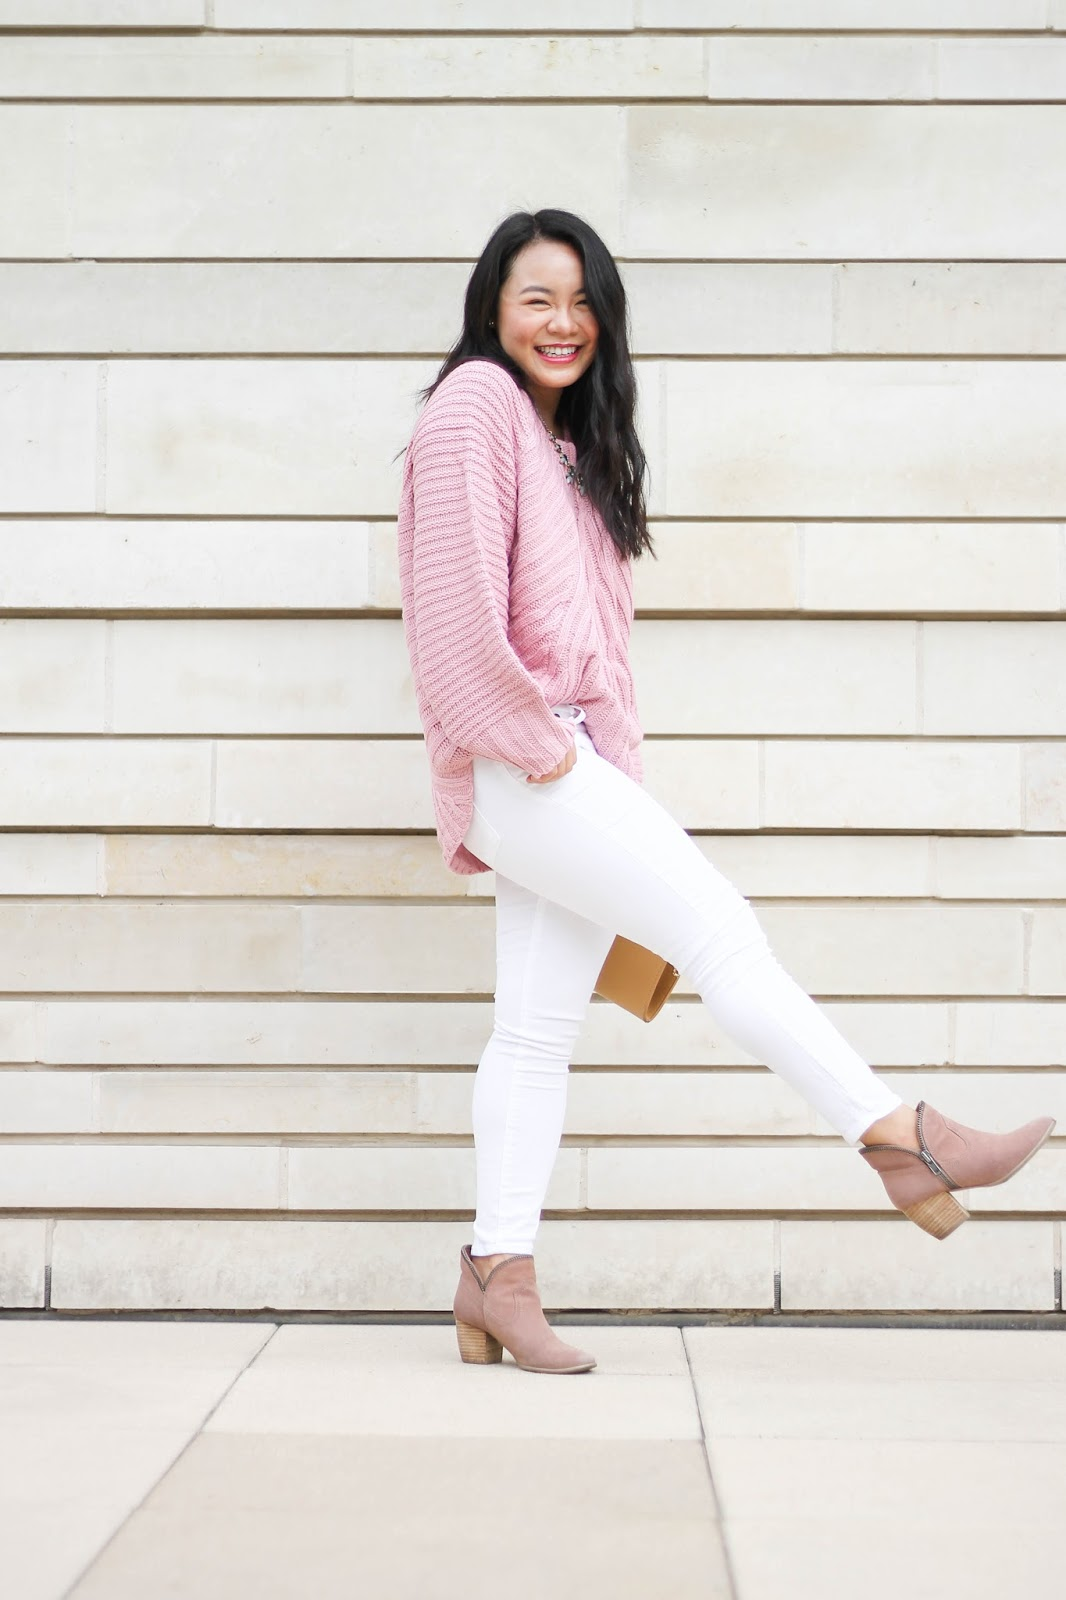 The Coziest Pink Sweater | The Bella Insider